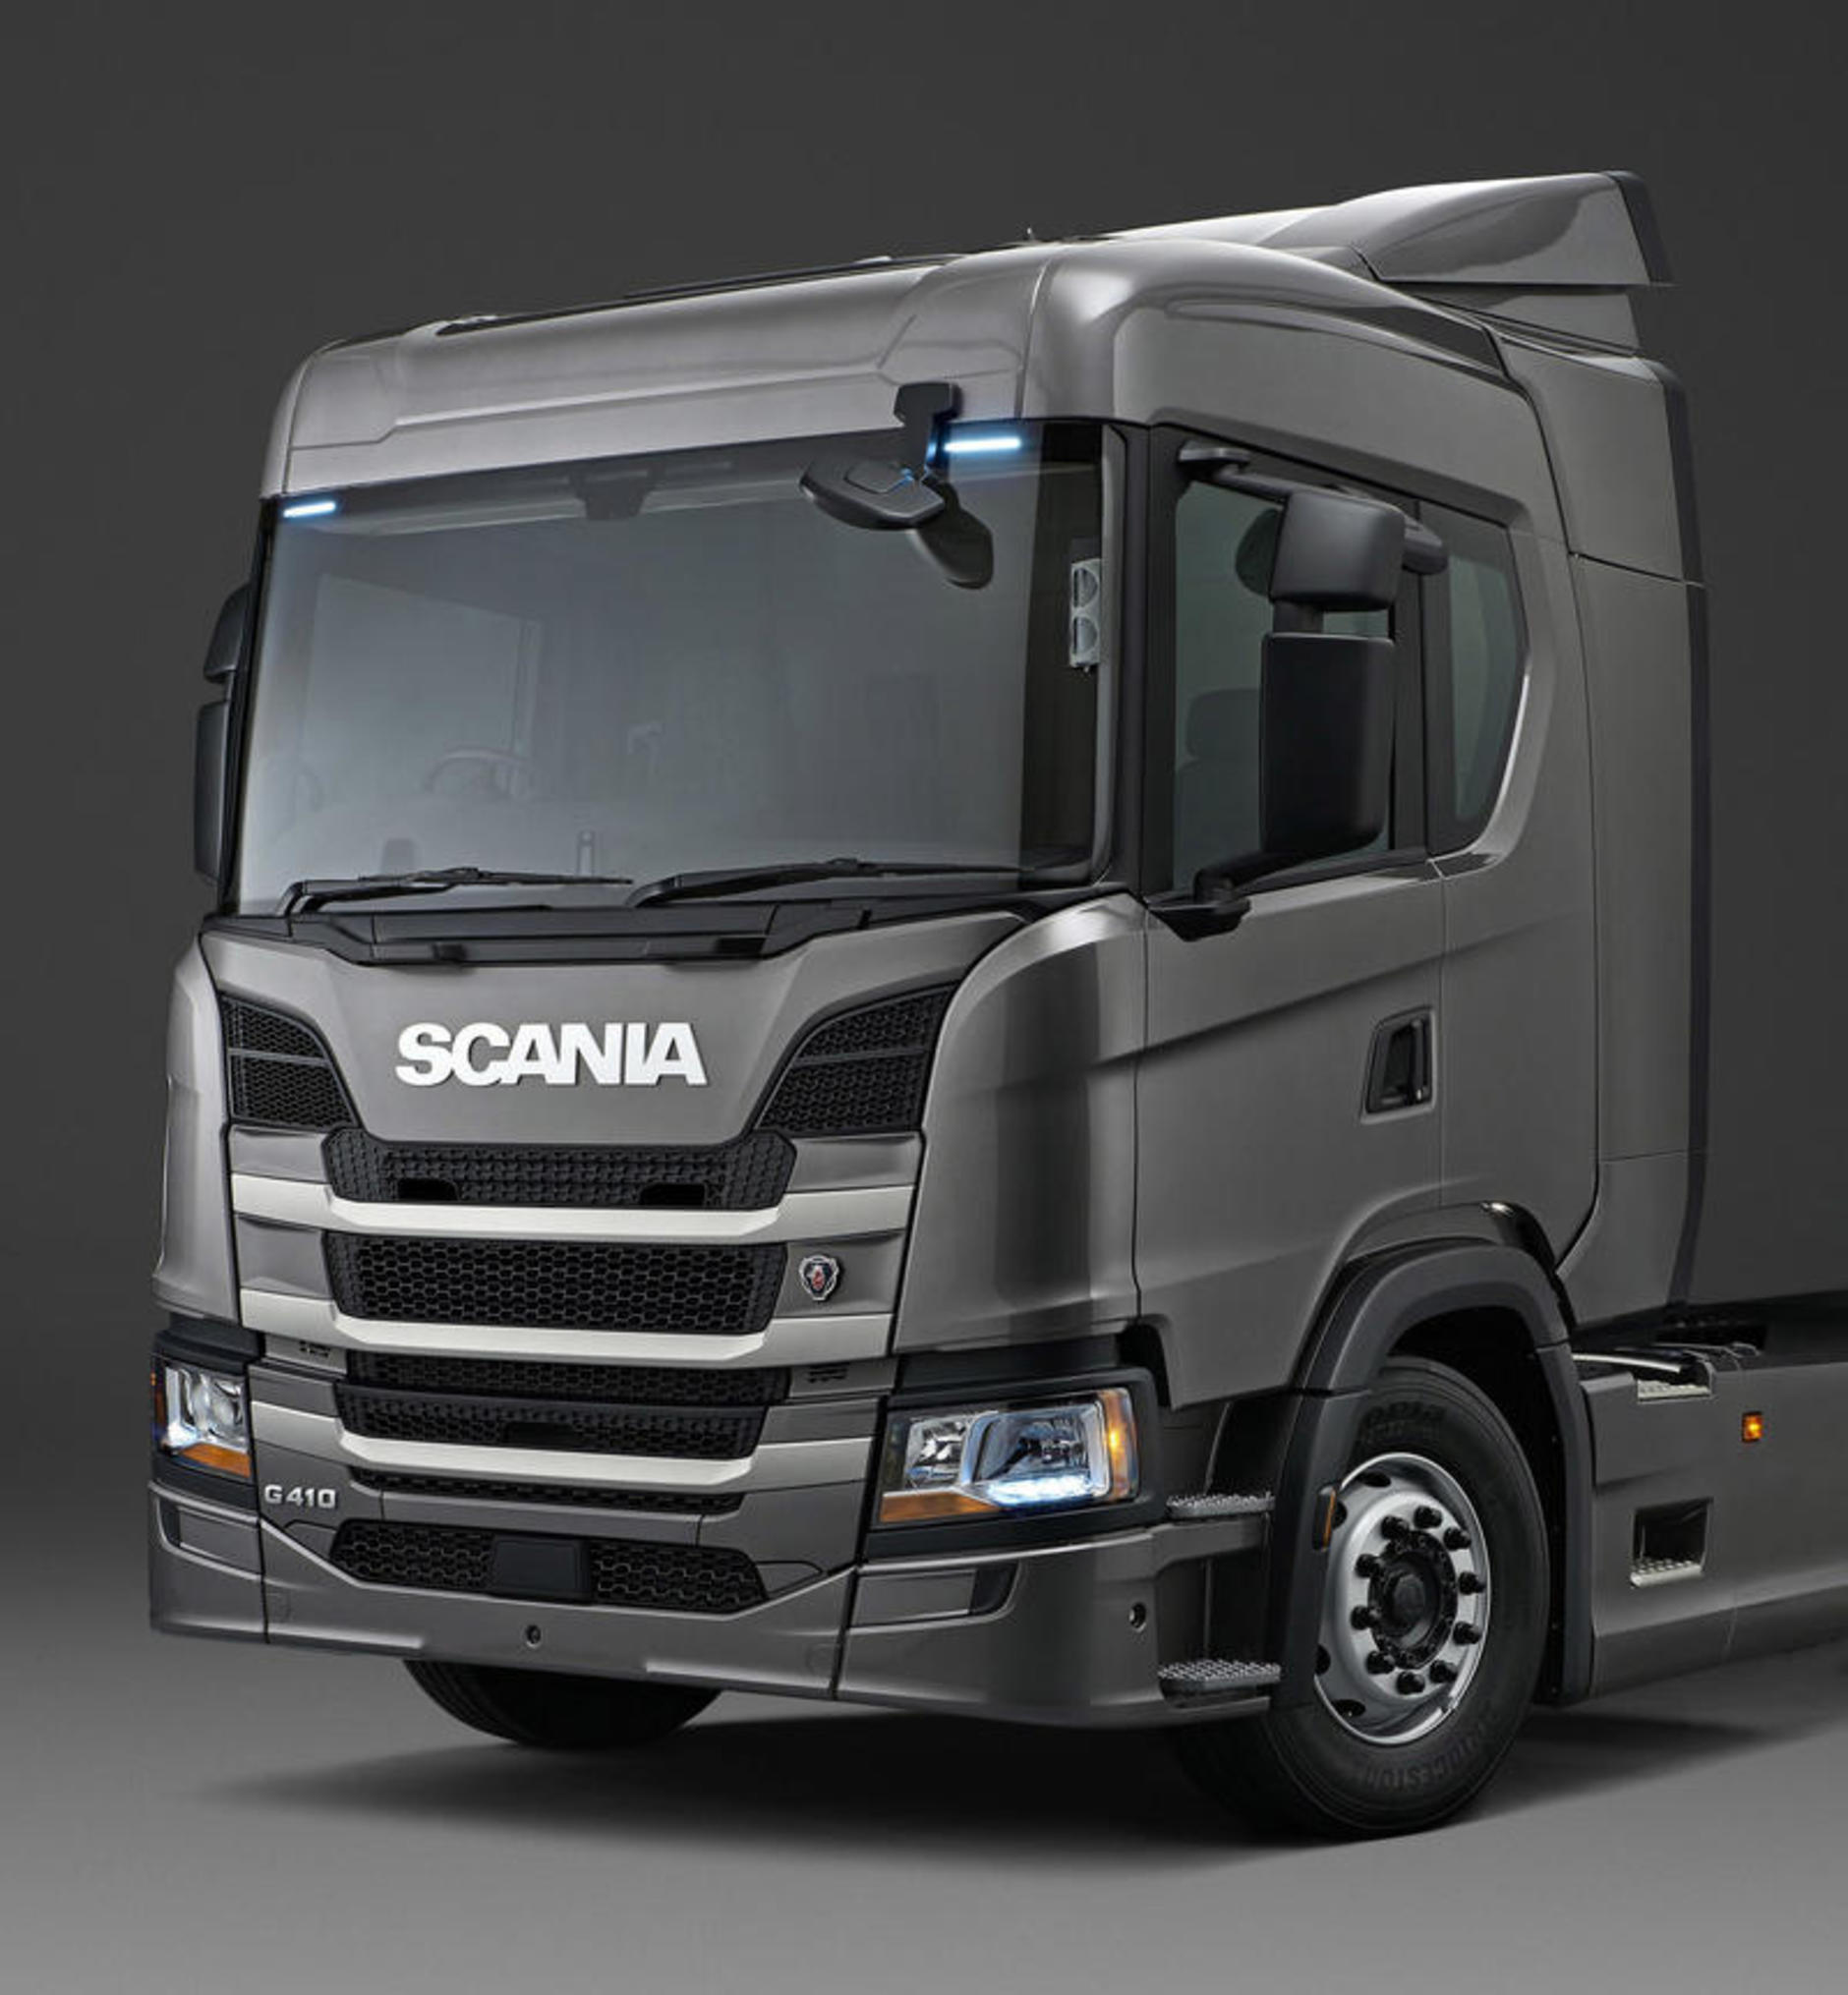 New Scania G Series Truck Revealed Commercial Motor